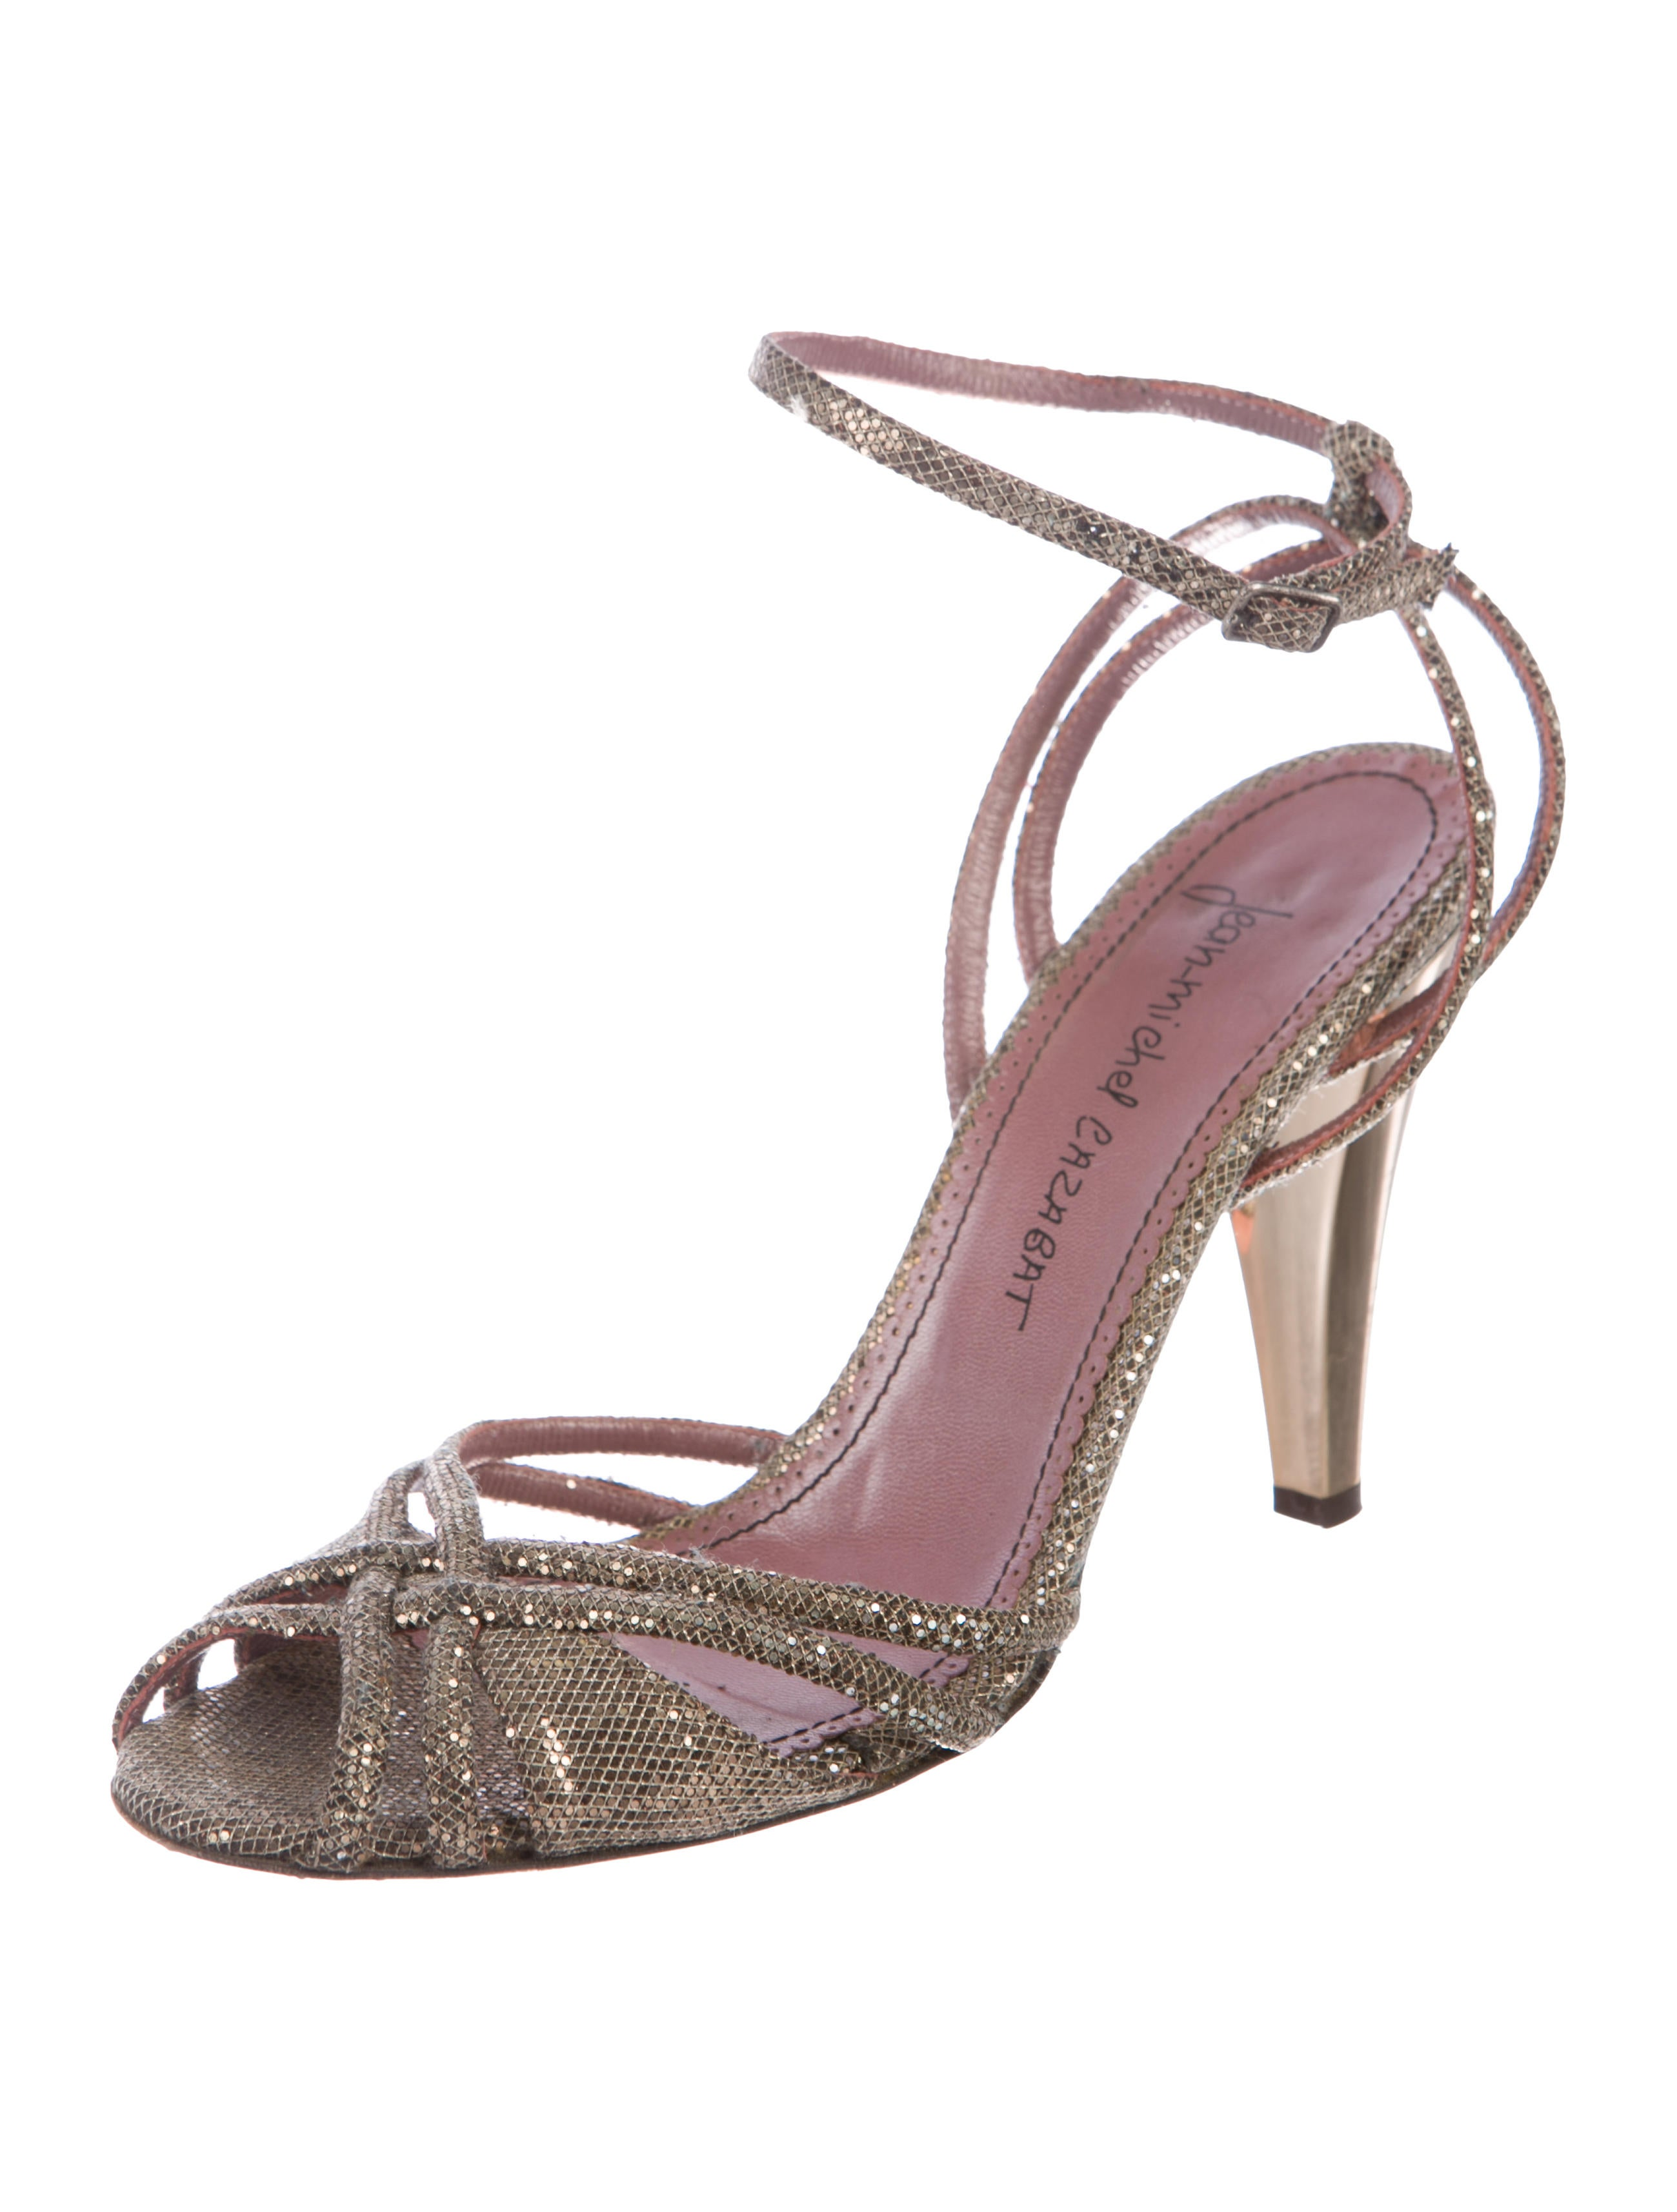 2014 for sale cheap sale wiki Jean-Michel Cazabat Glitter Multistrap Sandals the cheapest cheap online clearance best seller outlet 100% authentic H62txk